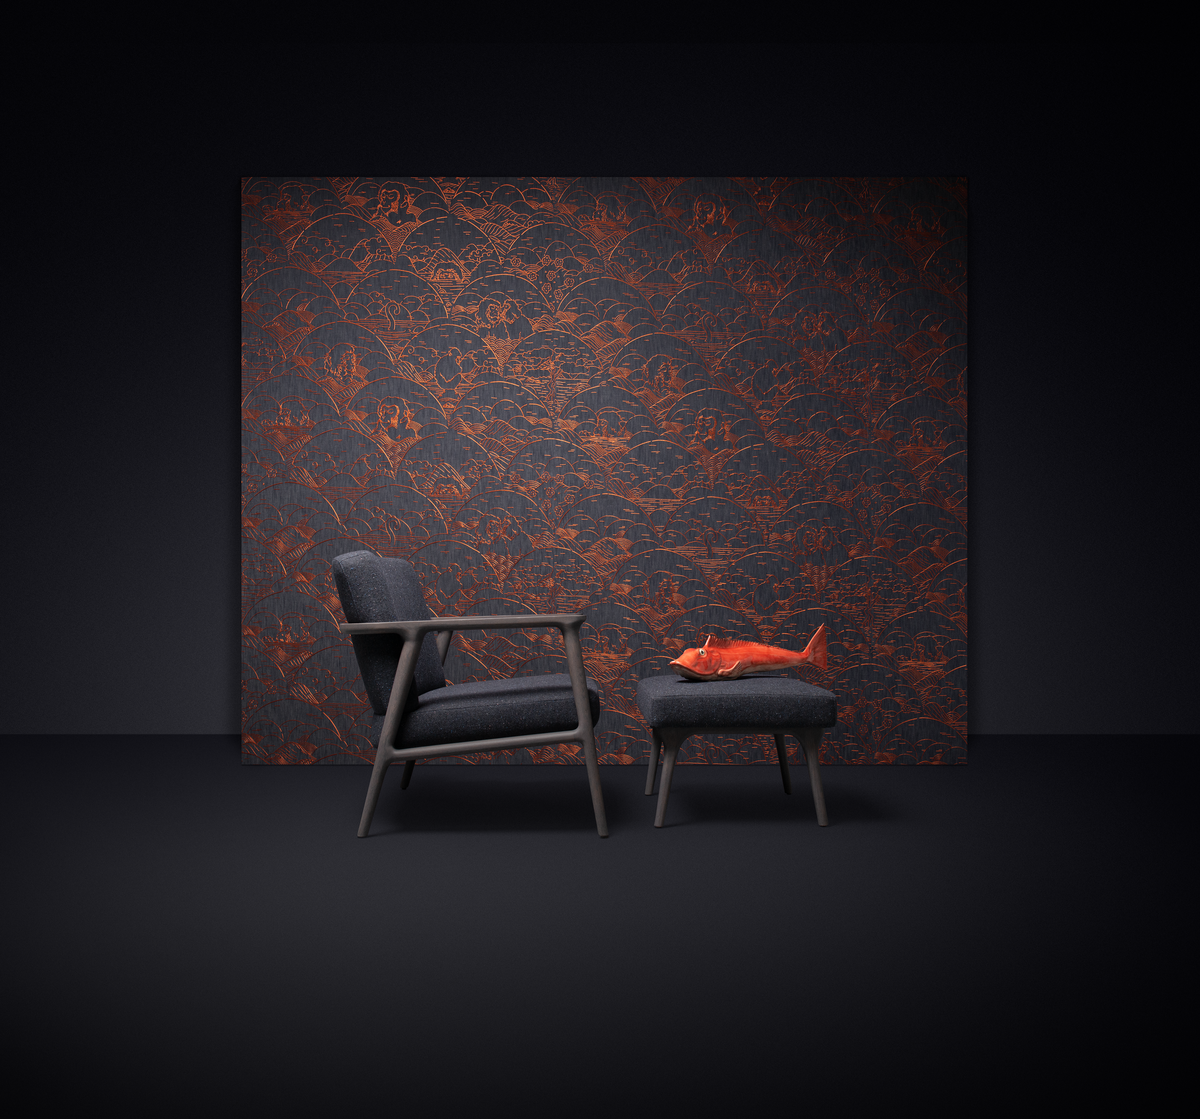 Poetic composition with Zio Lounge Chair and Zio Footstool